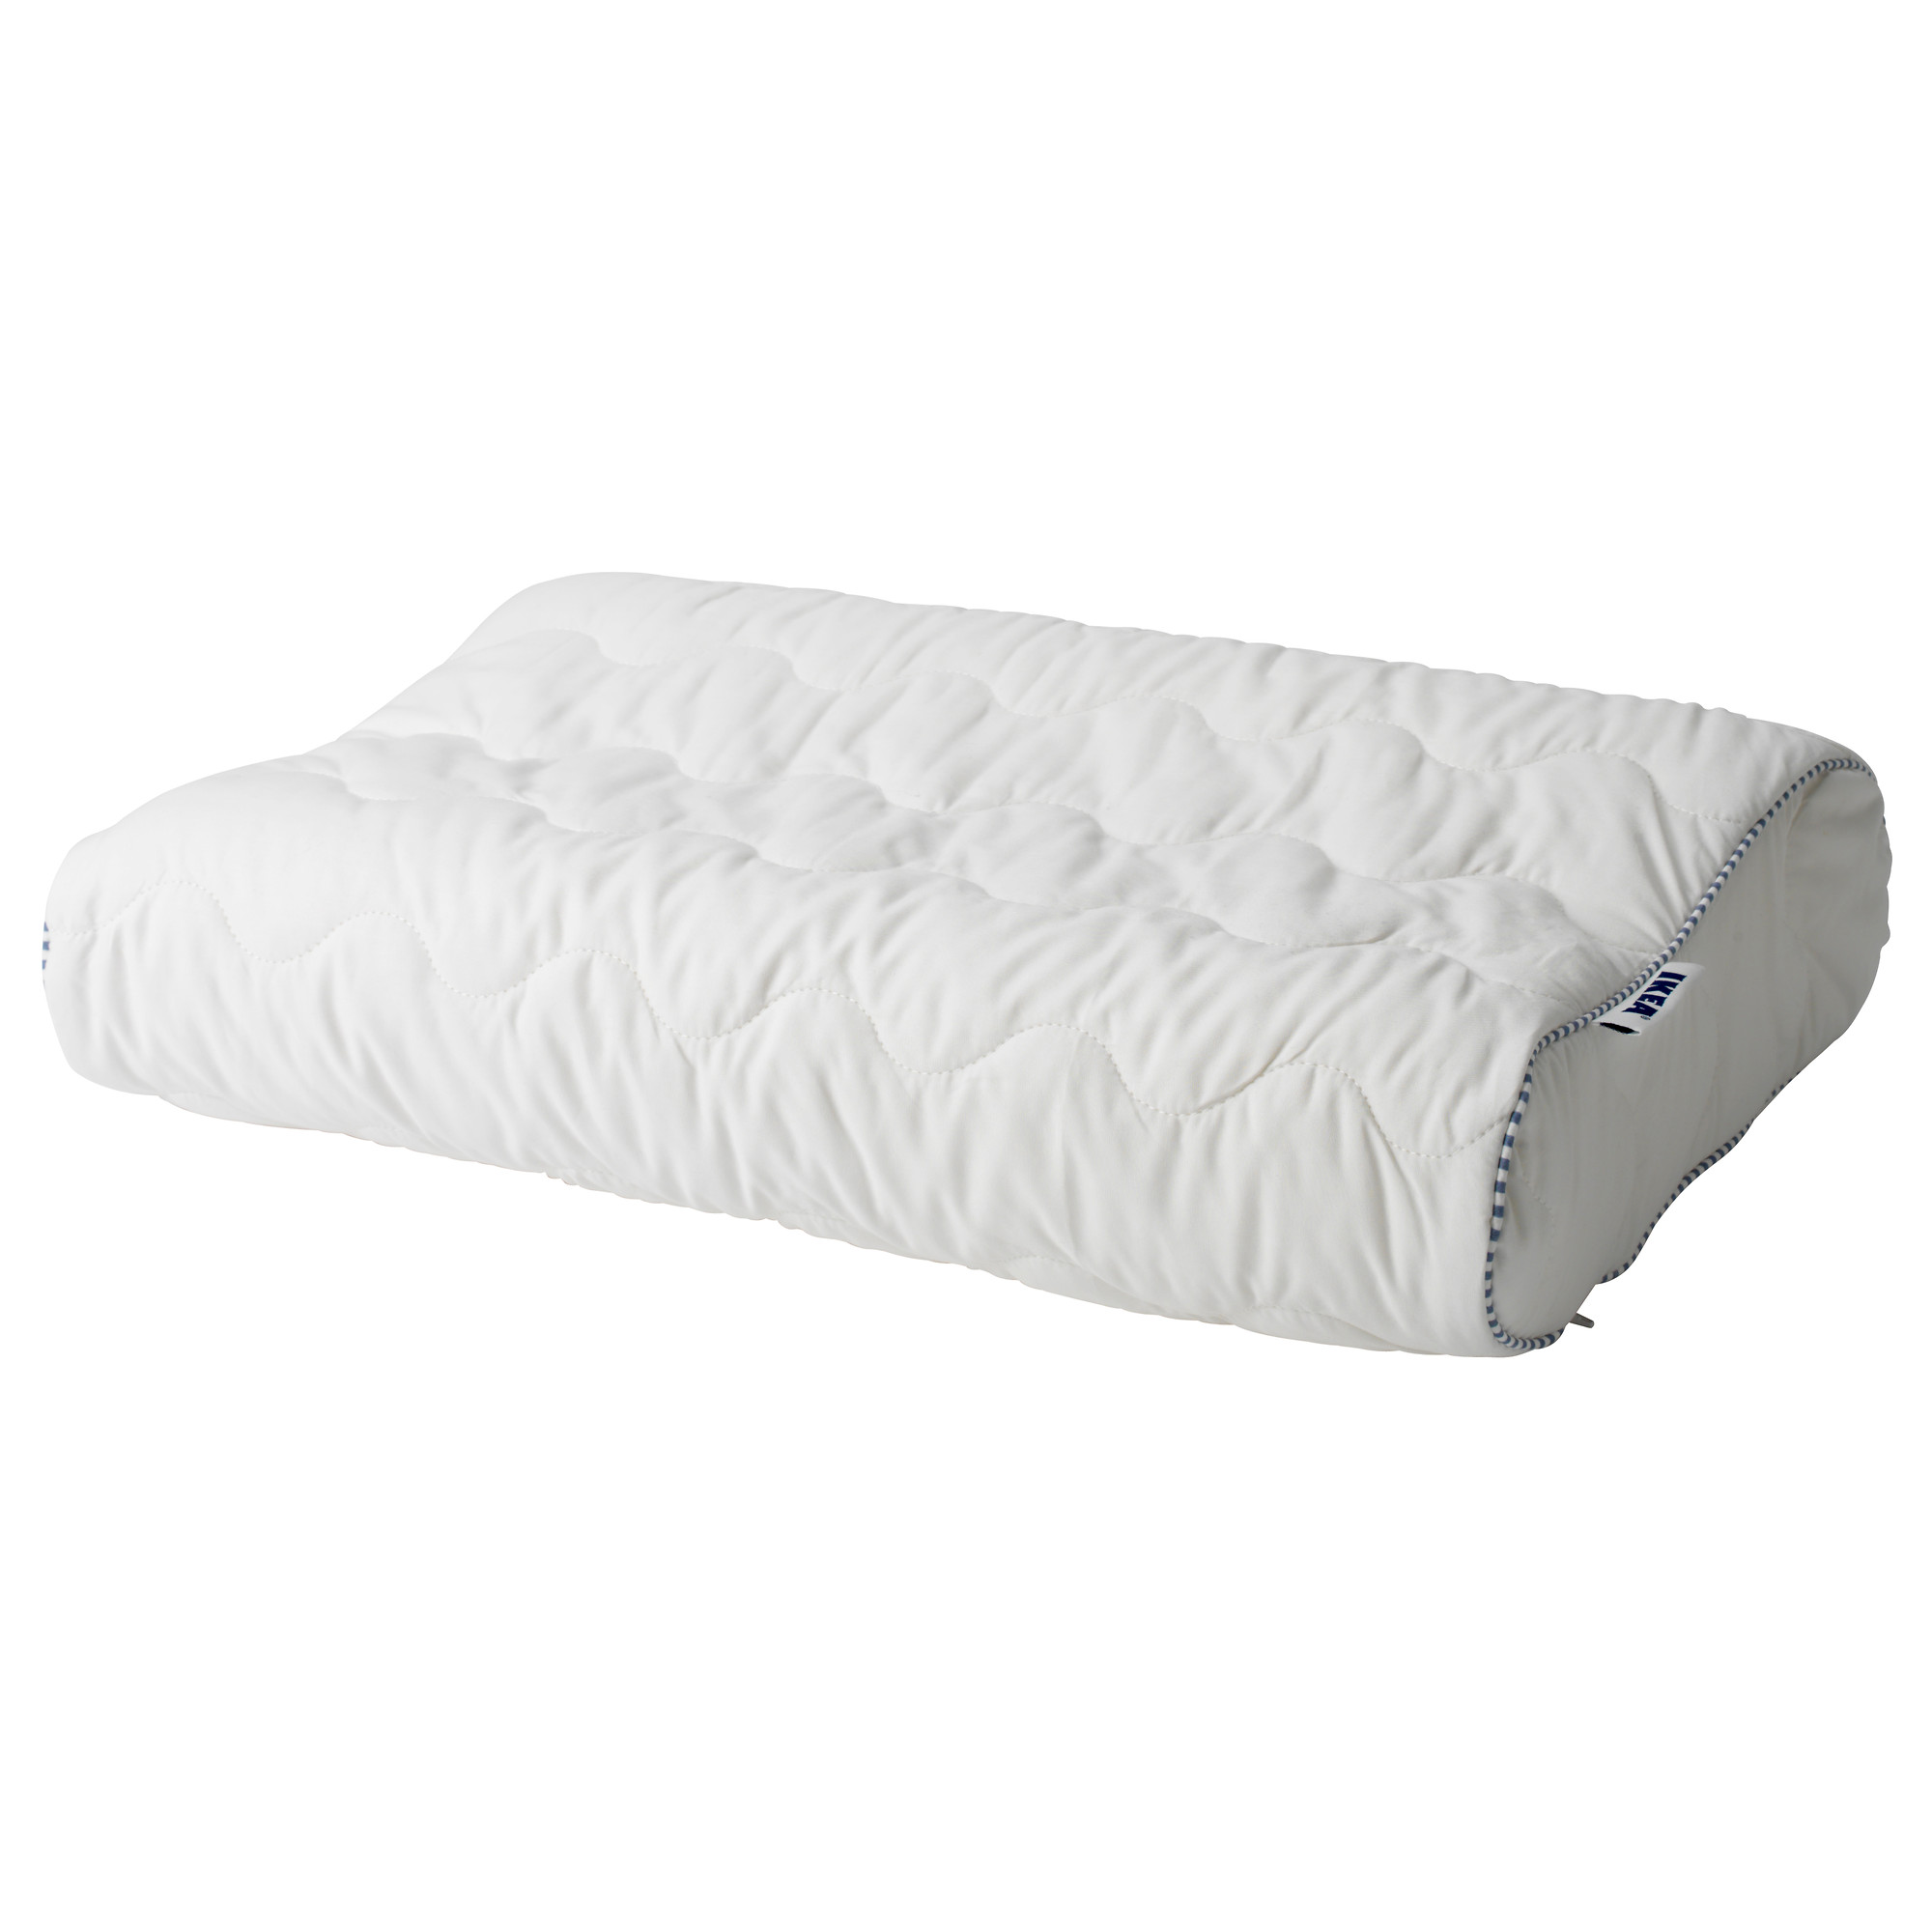 ikea oreiller GOSA HASSEL Pillow, side sleeper   IKEA | Shoplinkz, Beds  ikea oreiller